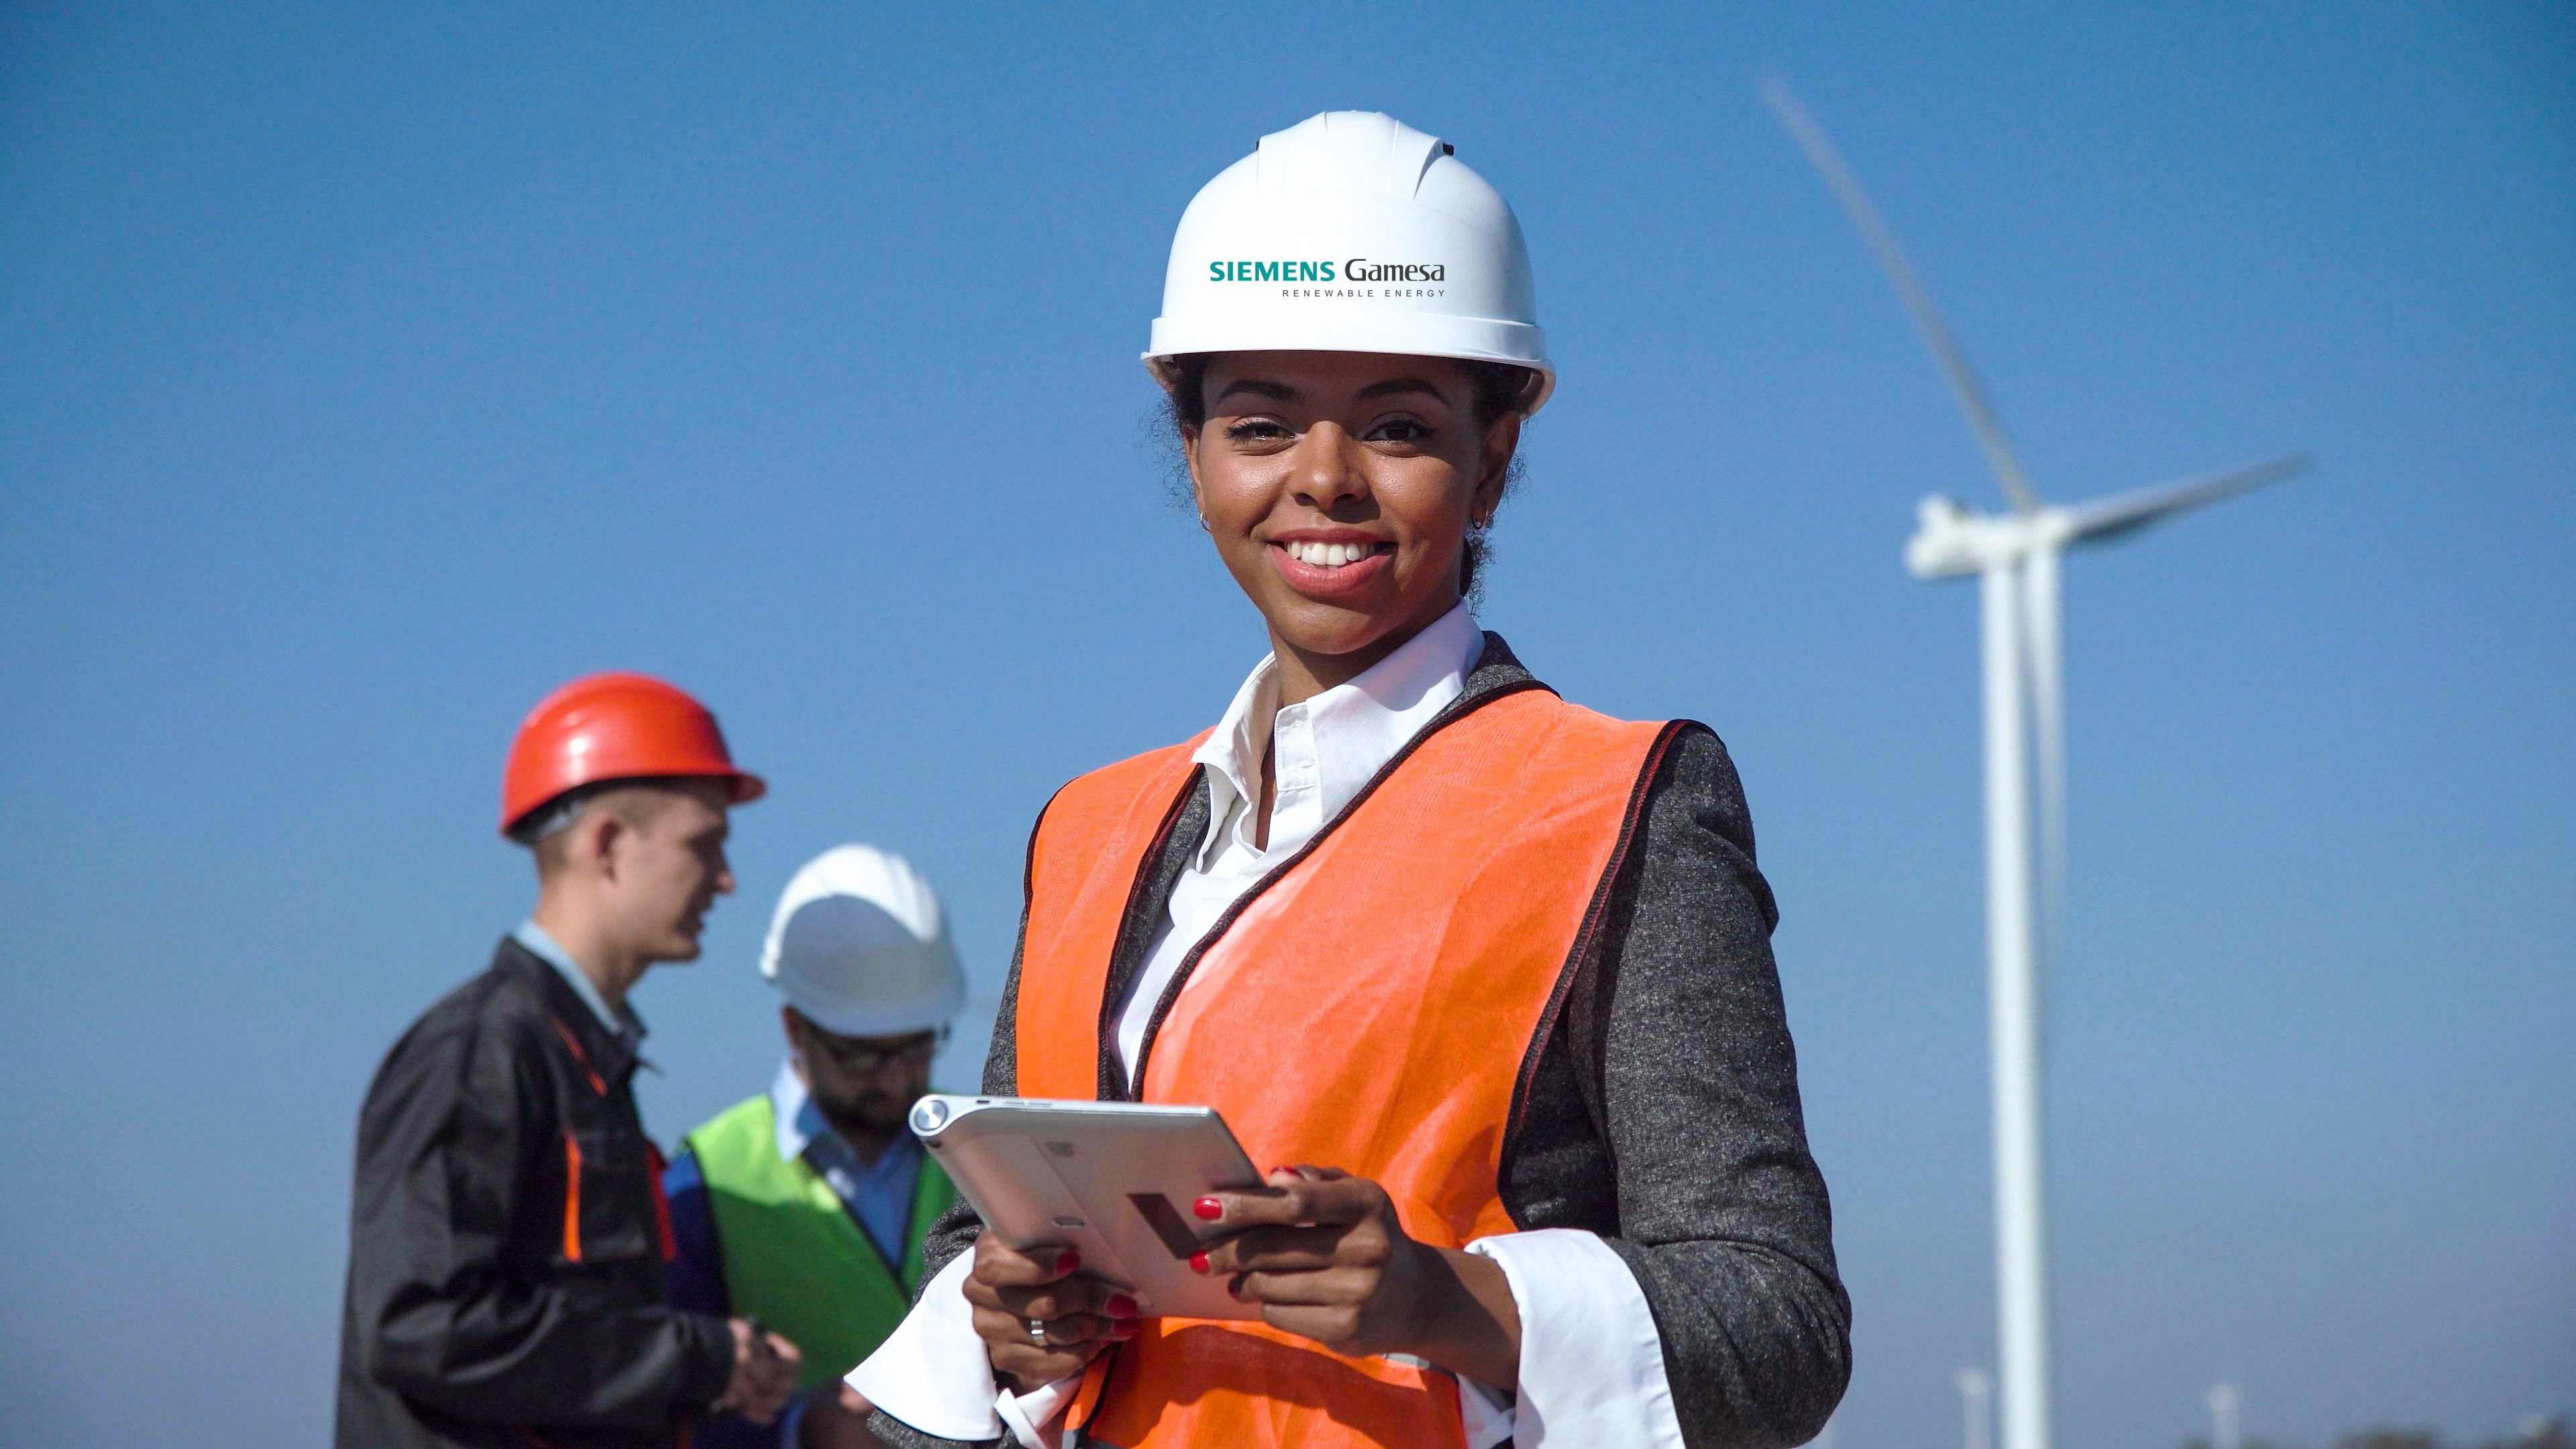 Siemens Gamesa has a Diversity & Inclusion Policy